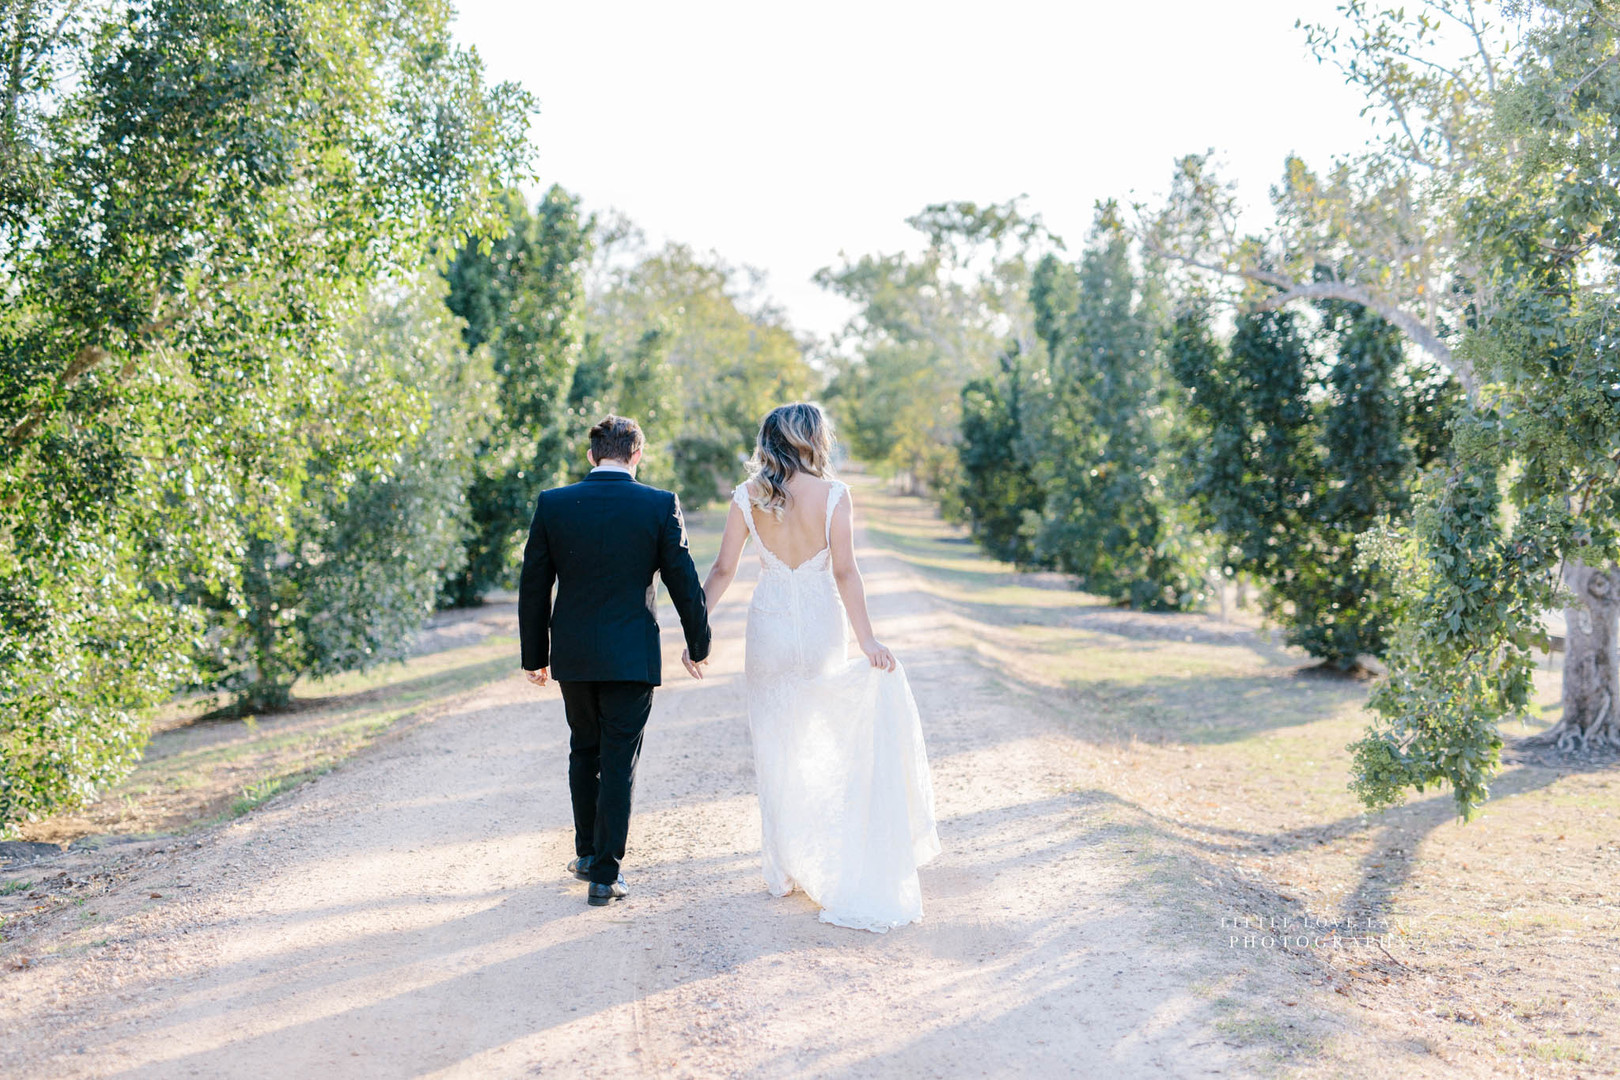 Spicers Hidden Vale Wedding Photography